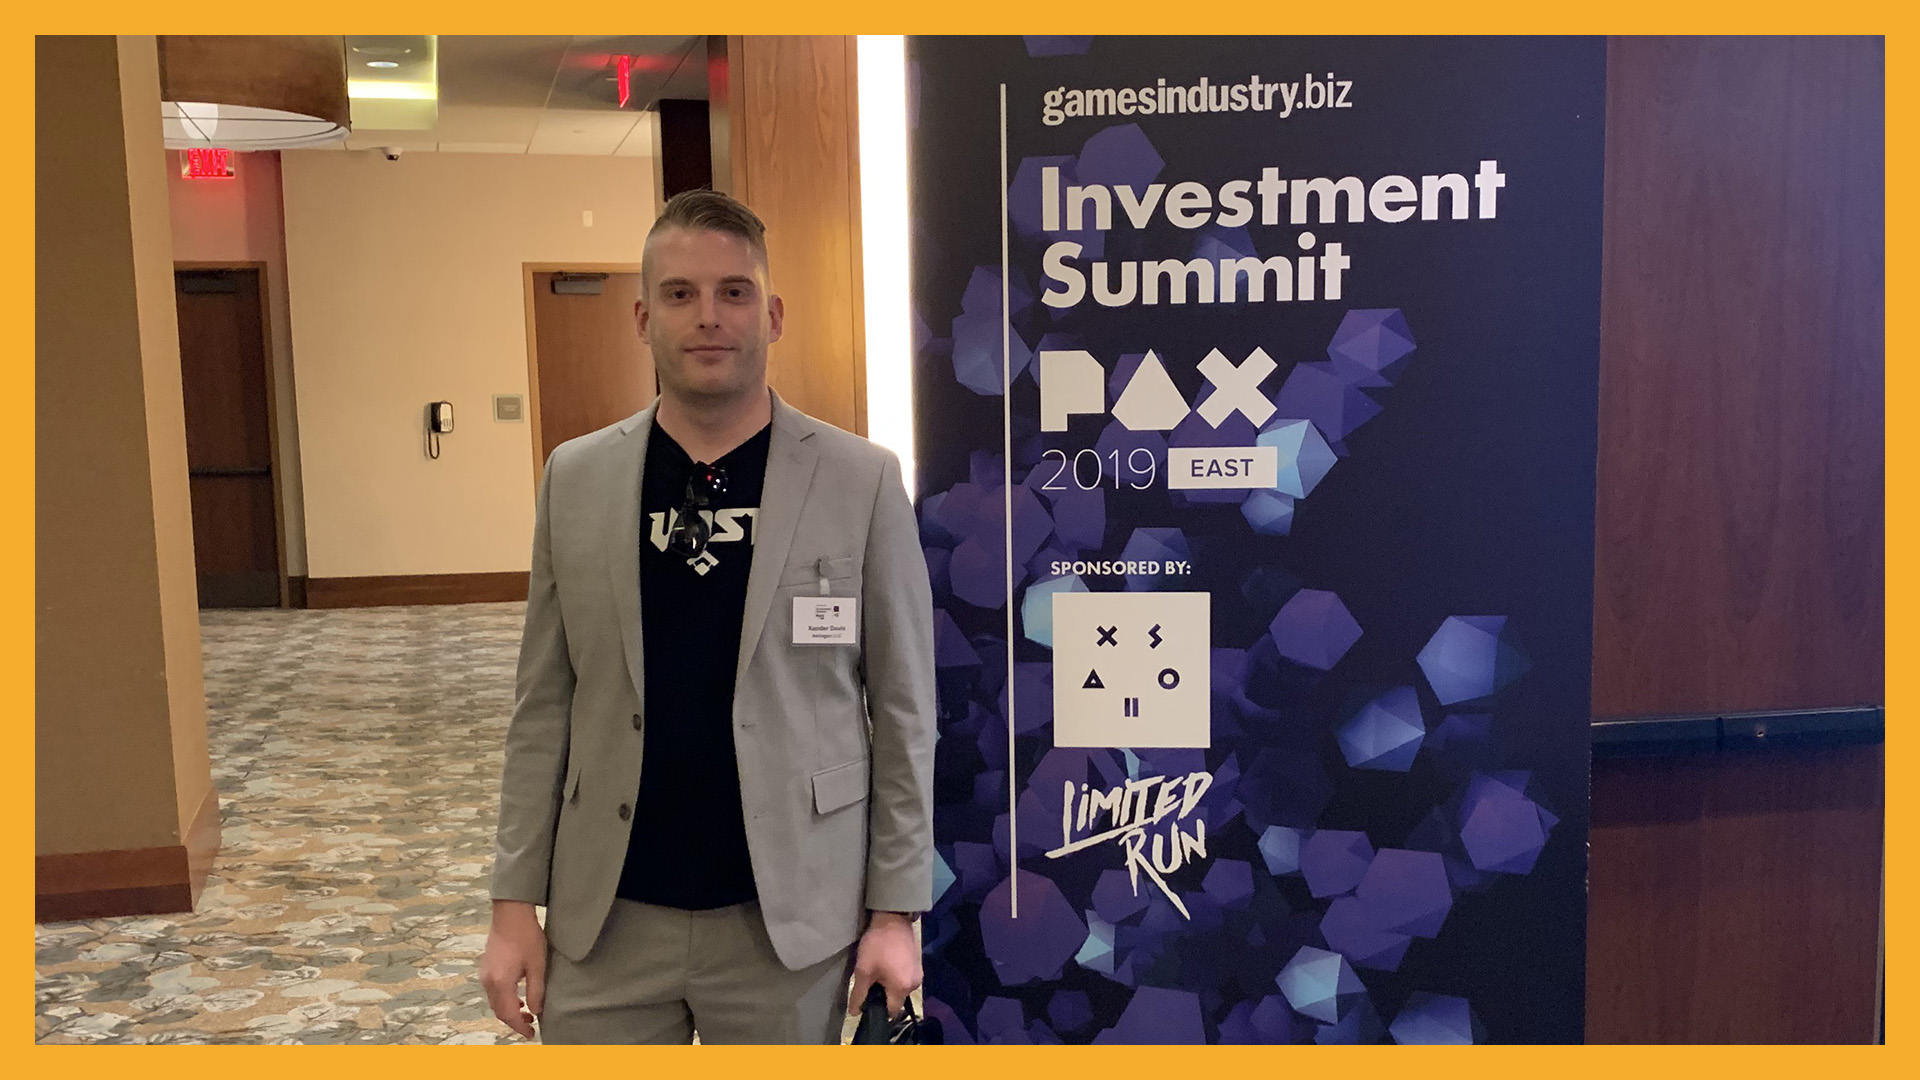 ASTROGUN-GamesIndustryBiz-InvestmentSummit-PAXEast-20190328-Feature.jpeg